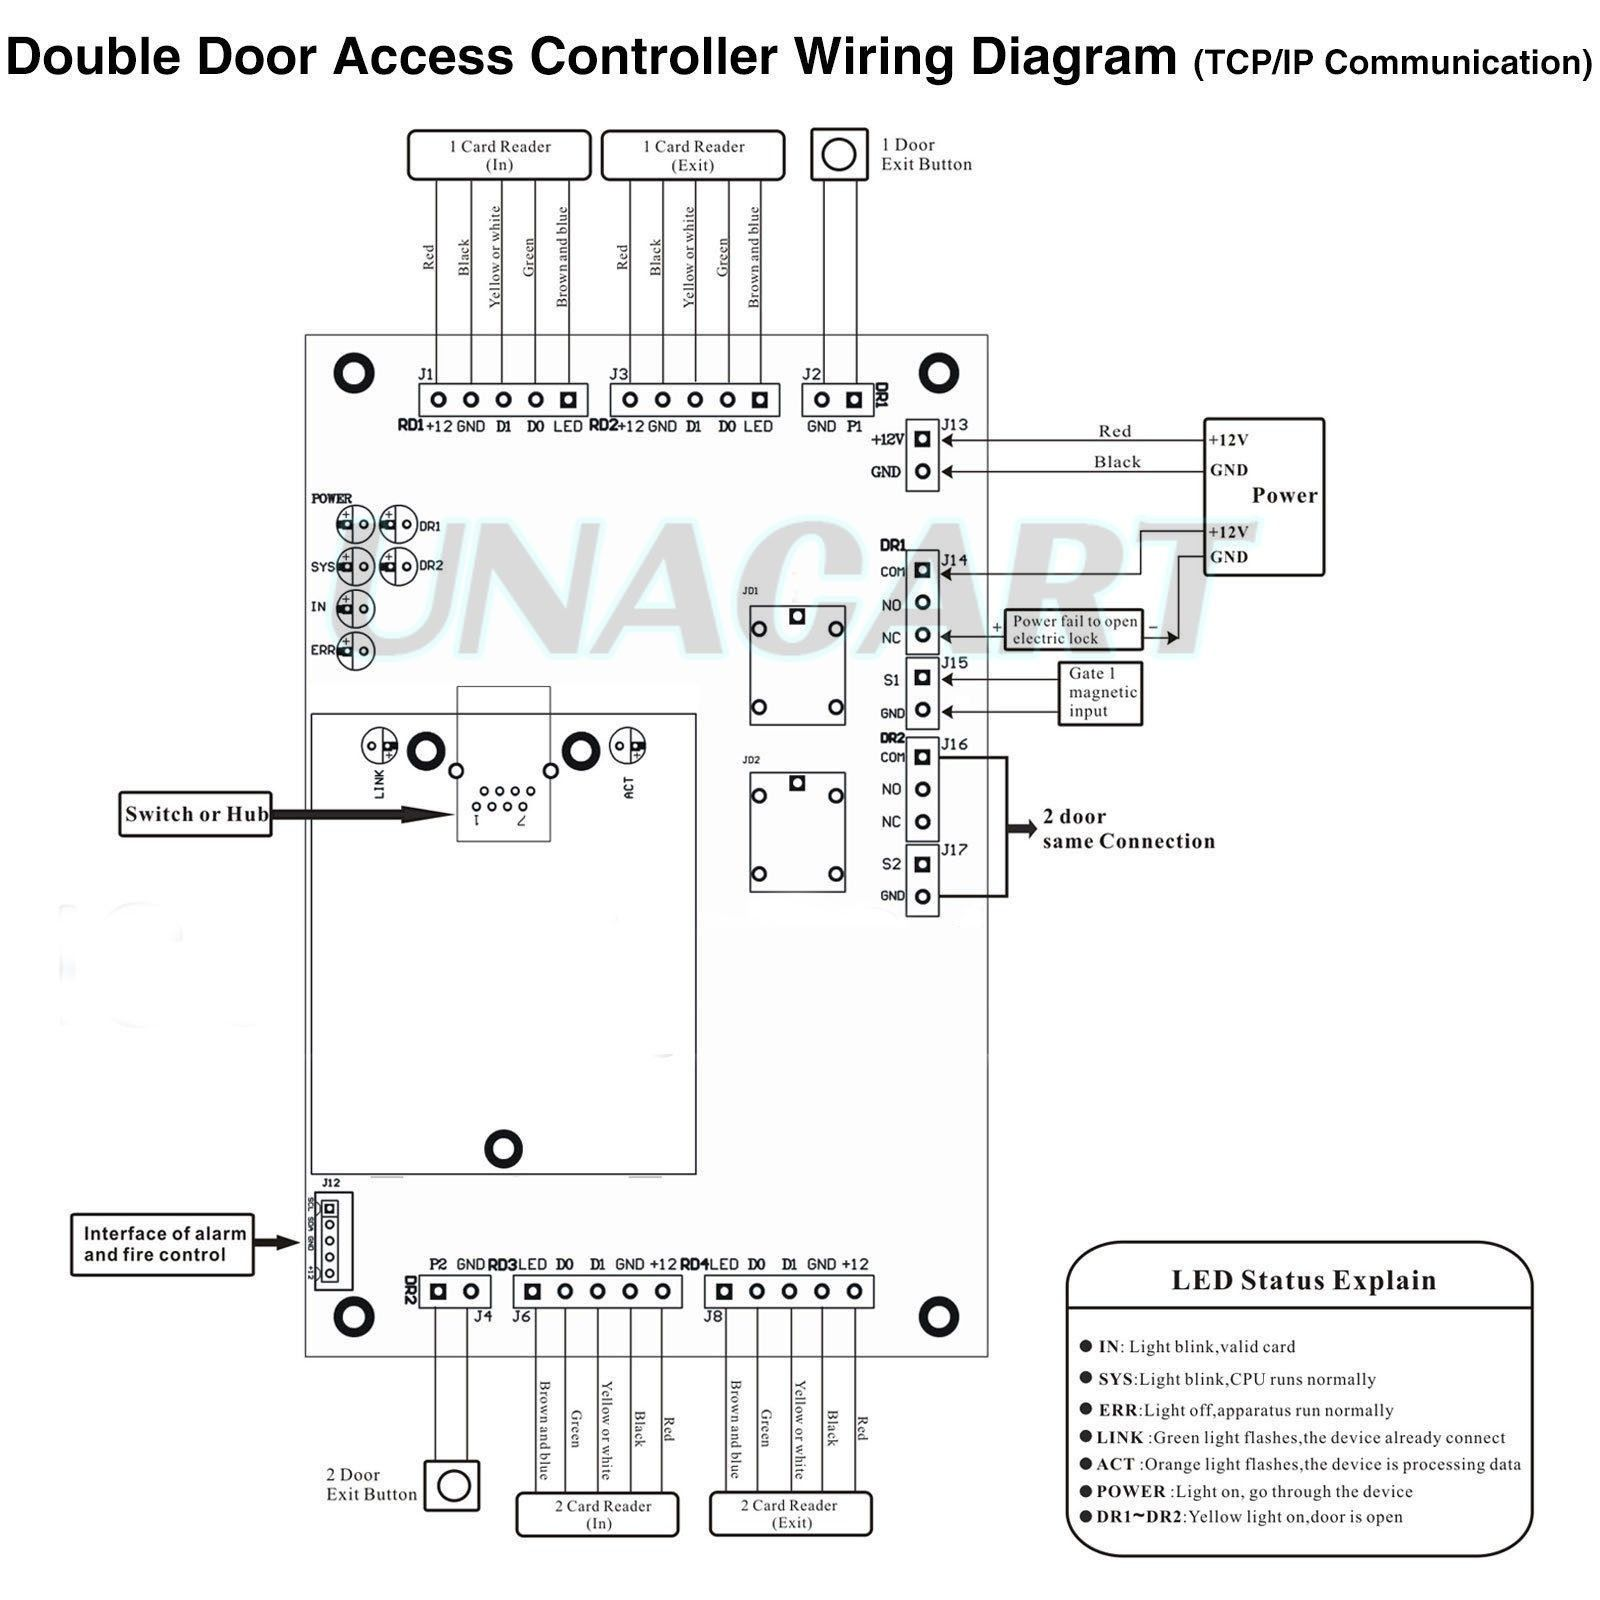 Hid Prox Reader Wiring Diagram In 2020 Network Access Control Readers Access Control